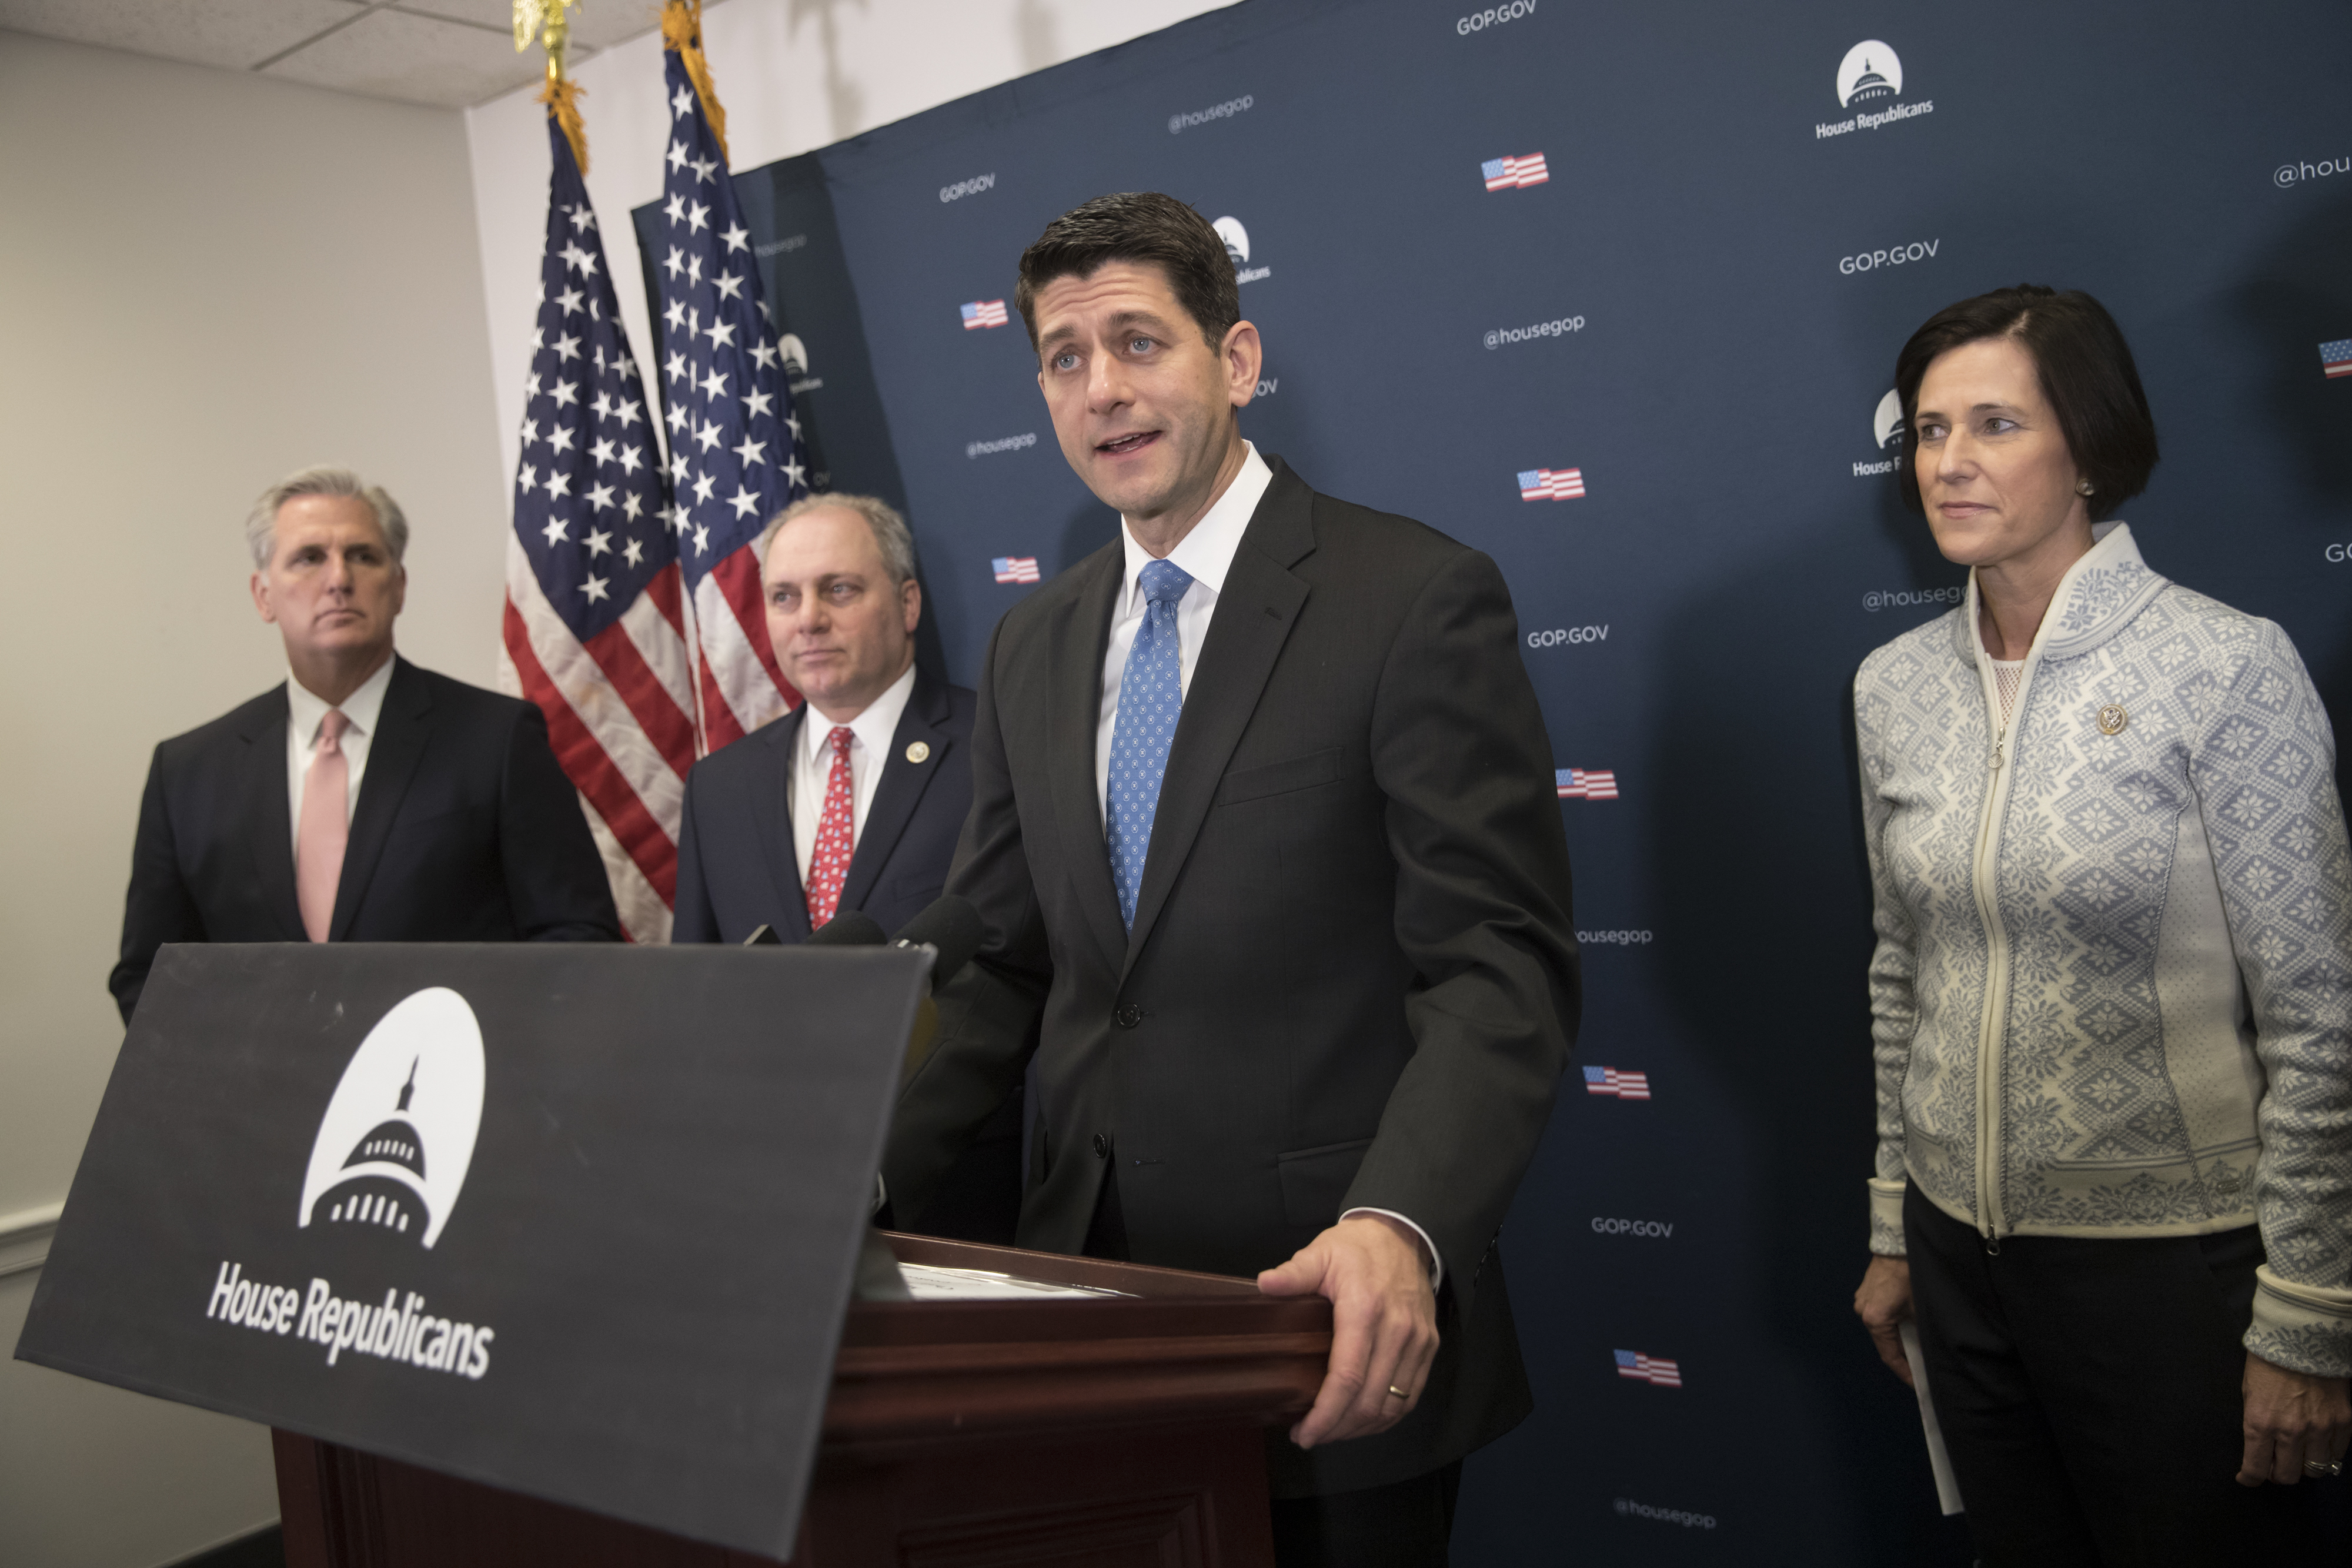 House Speaker Paul Ryan of Wis., joined by (L-R) House Majority Leader Kevin McCarthy of Calif., House Majority Whip Steve Scalise of La., and Rep. Mimi Walters, R-Calif., meets reporters on Capitol Hill in Washington on Jan. 24, 2017. (AP Photo/J. Scott Applewhite)